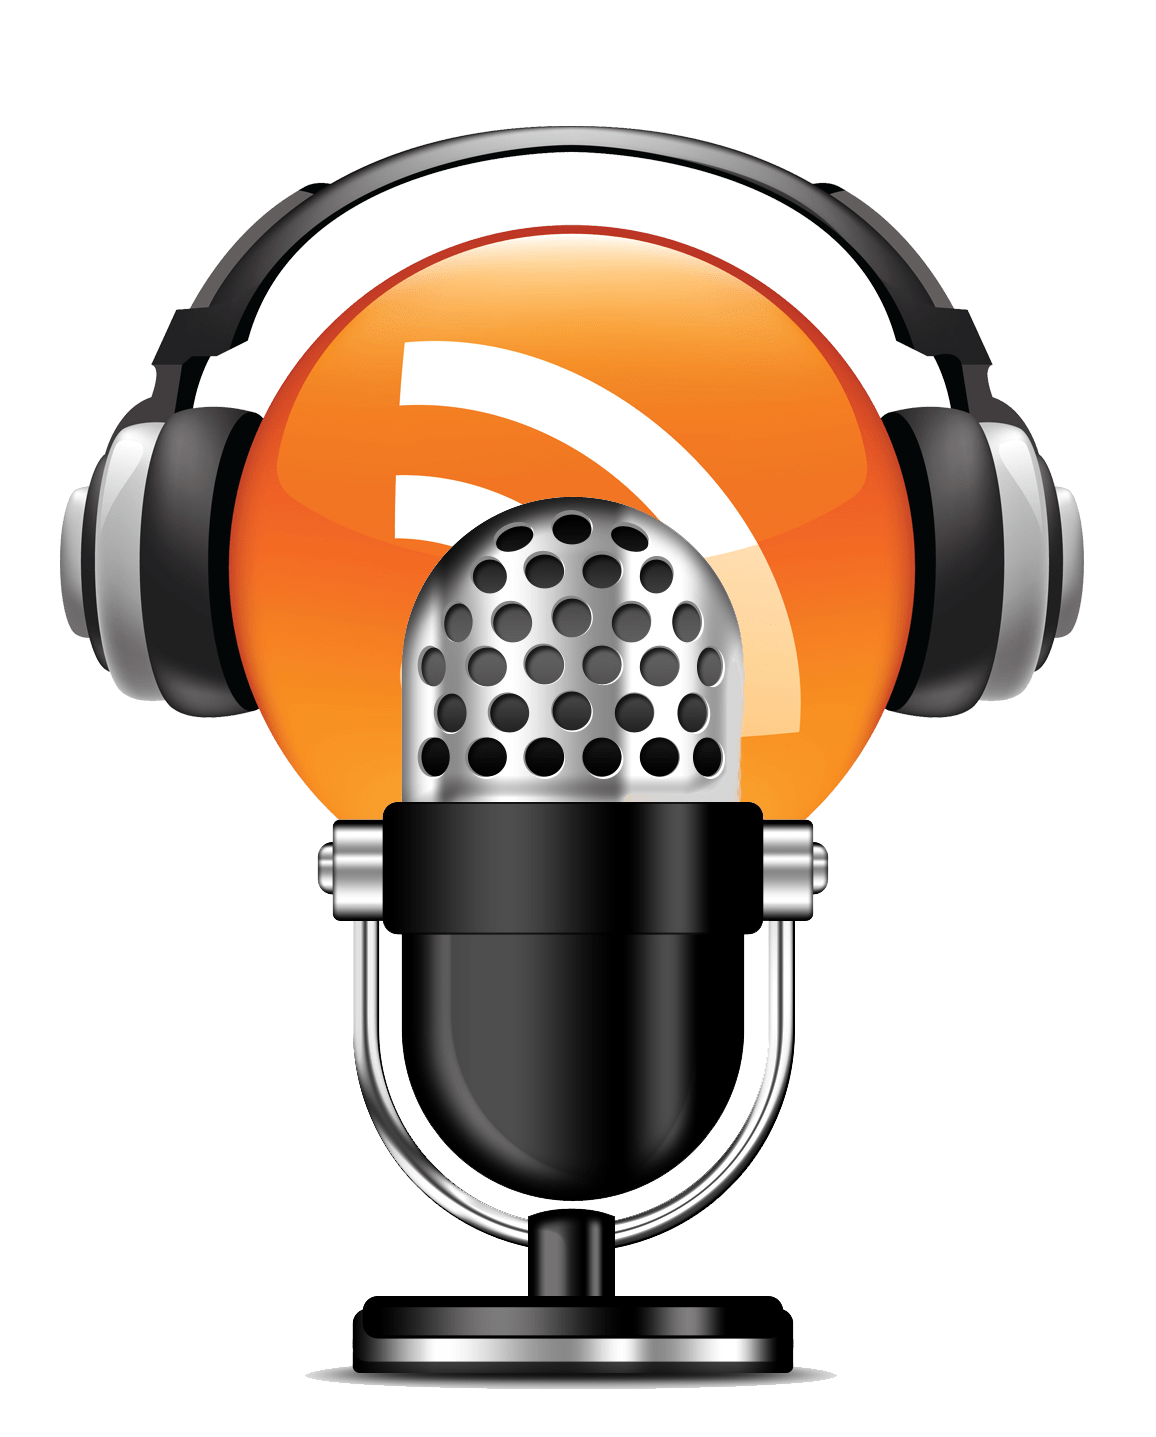 Vodcasting and Podcasting